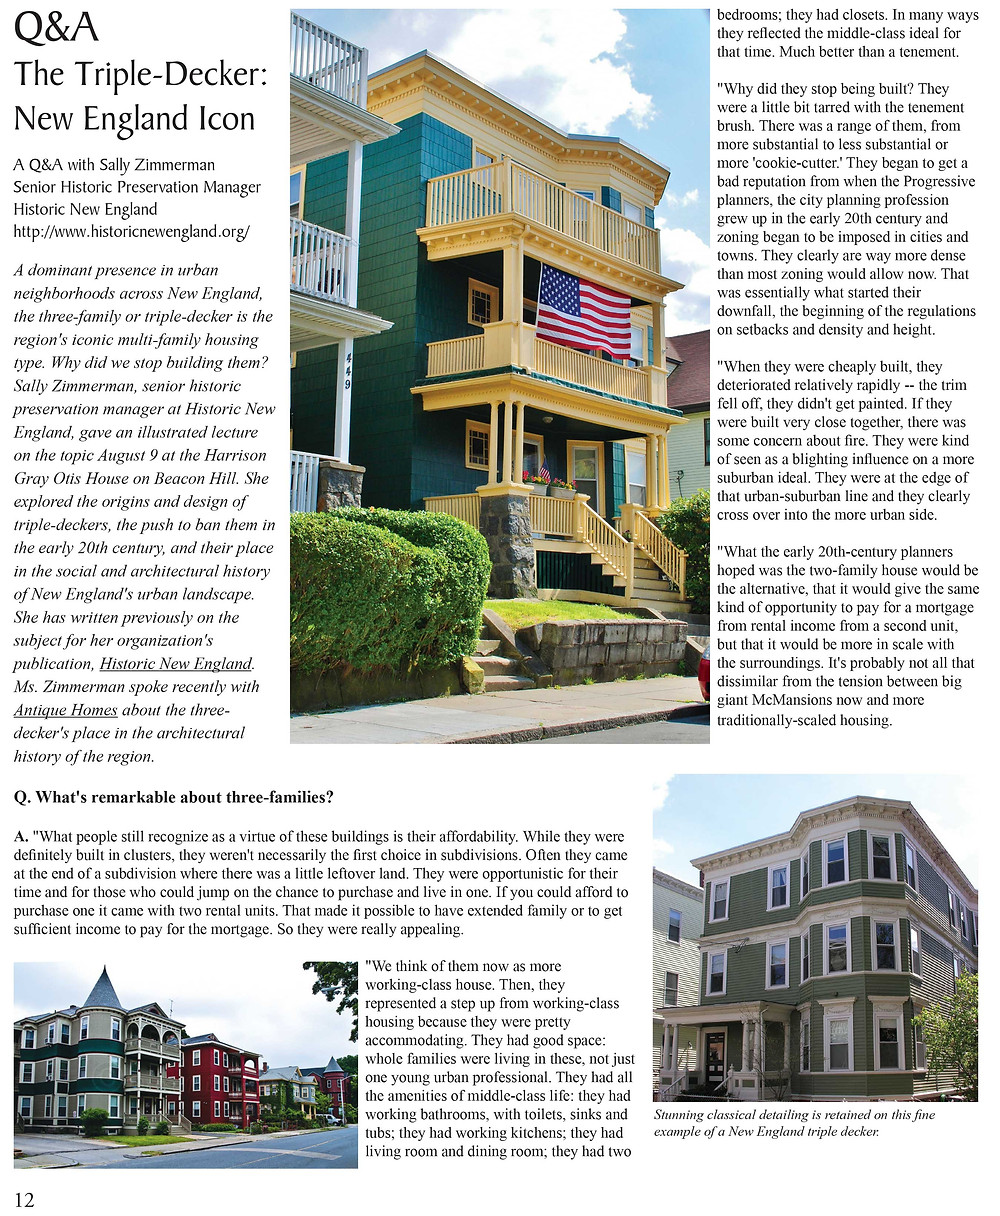 The Triple-Decker: New England Icon- by Antique Homes magazine